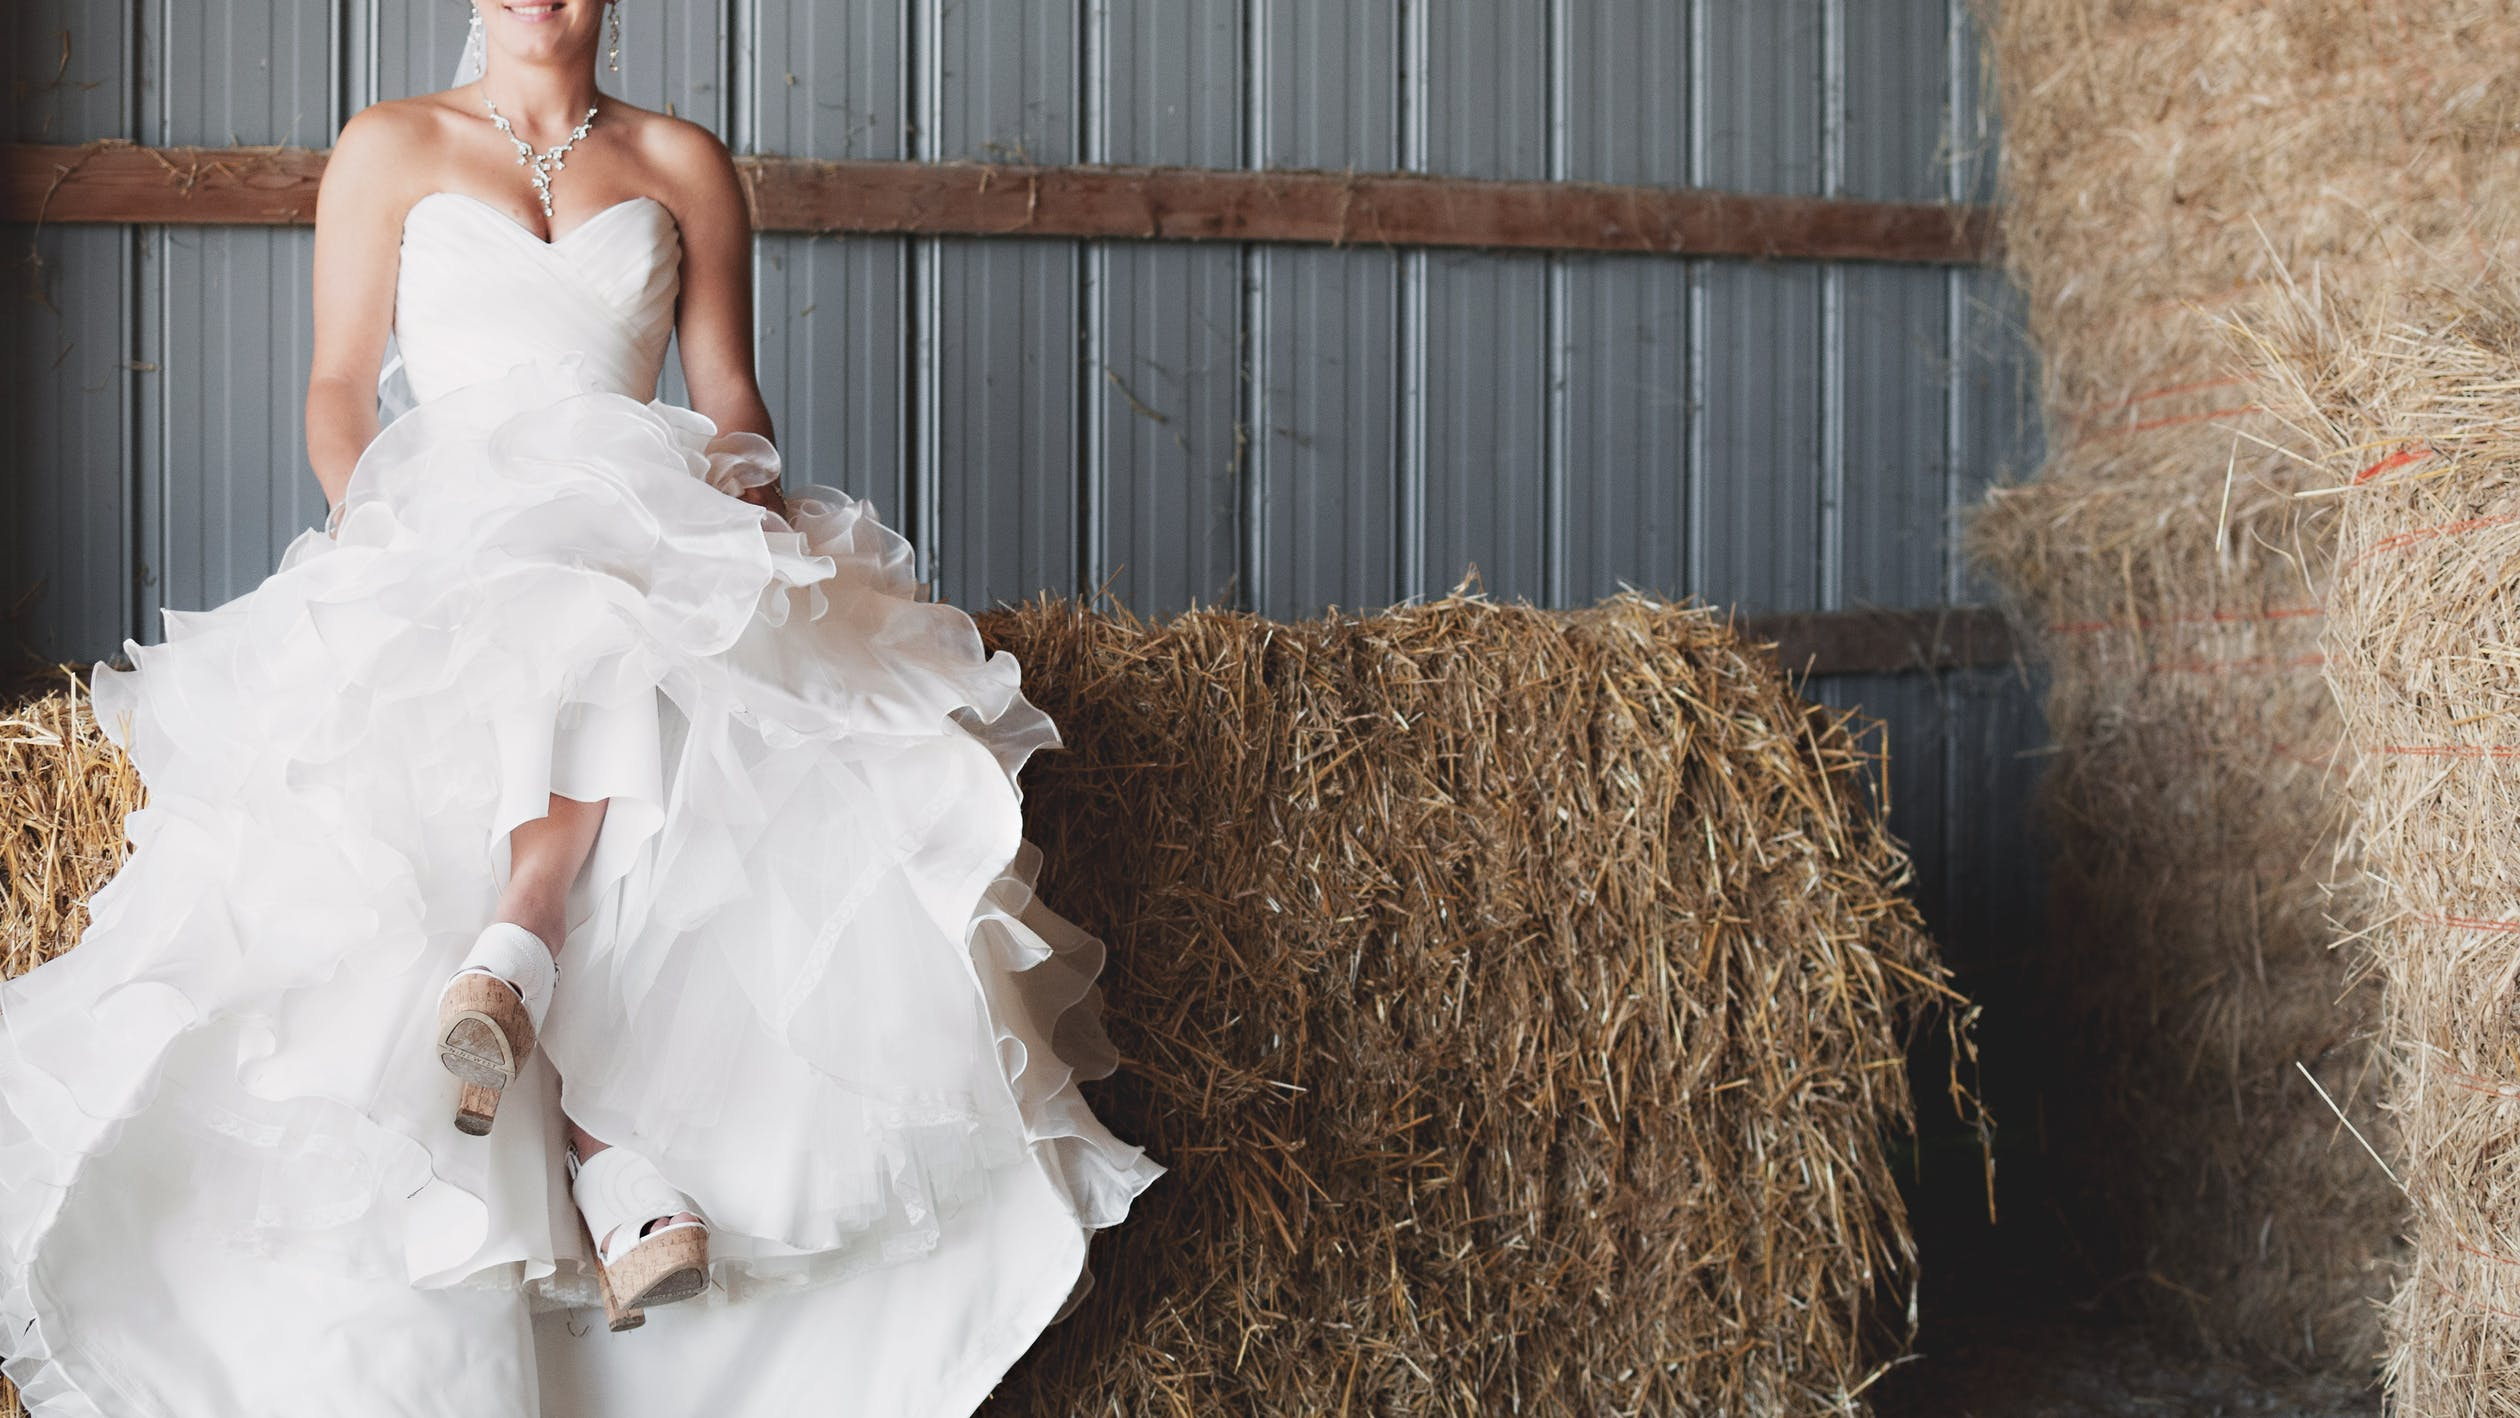 A sustainable clothing option for your wedding day